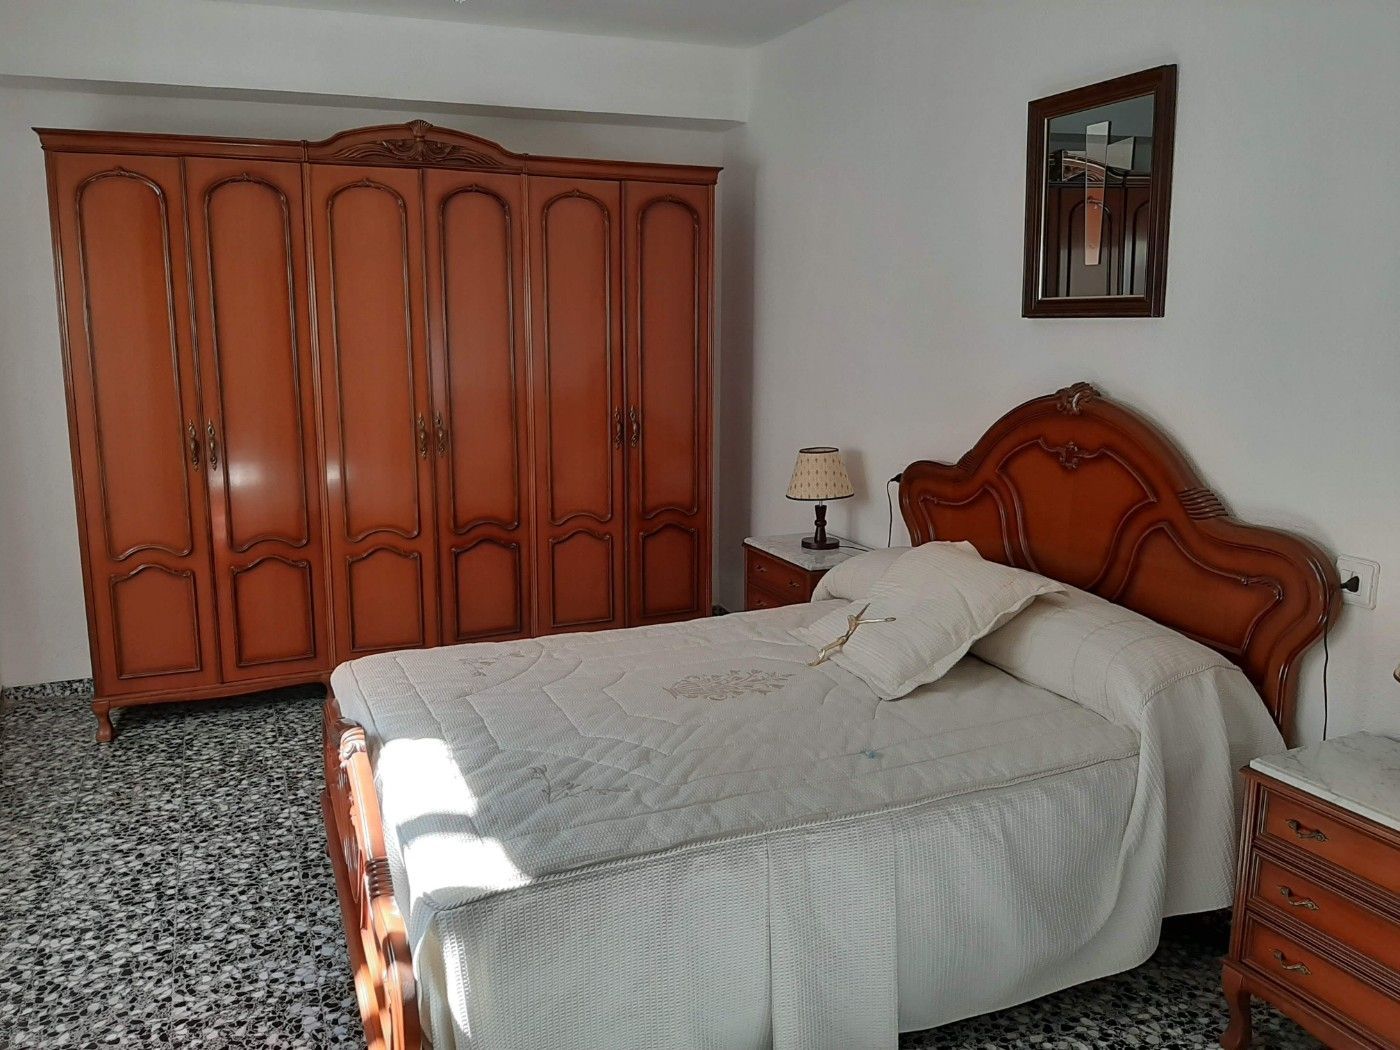 Appartement  Calle musica (de la). Oportunidad